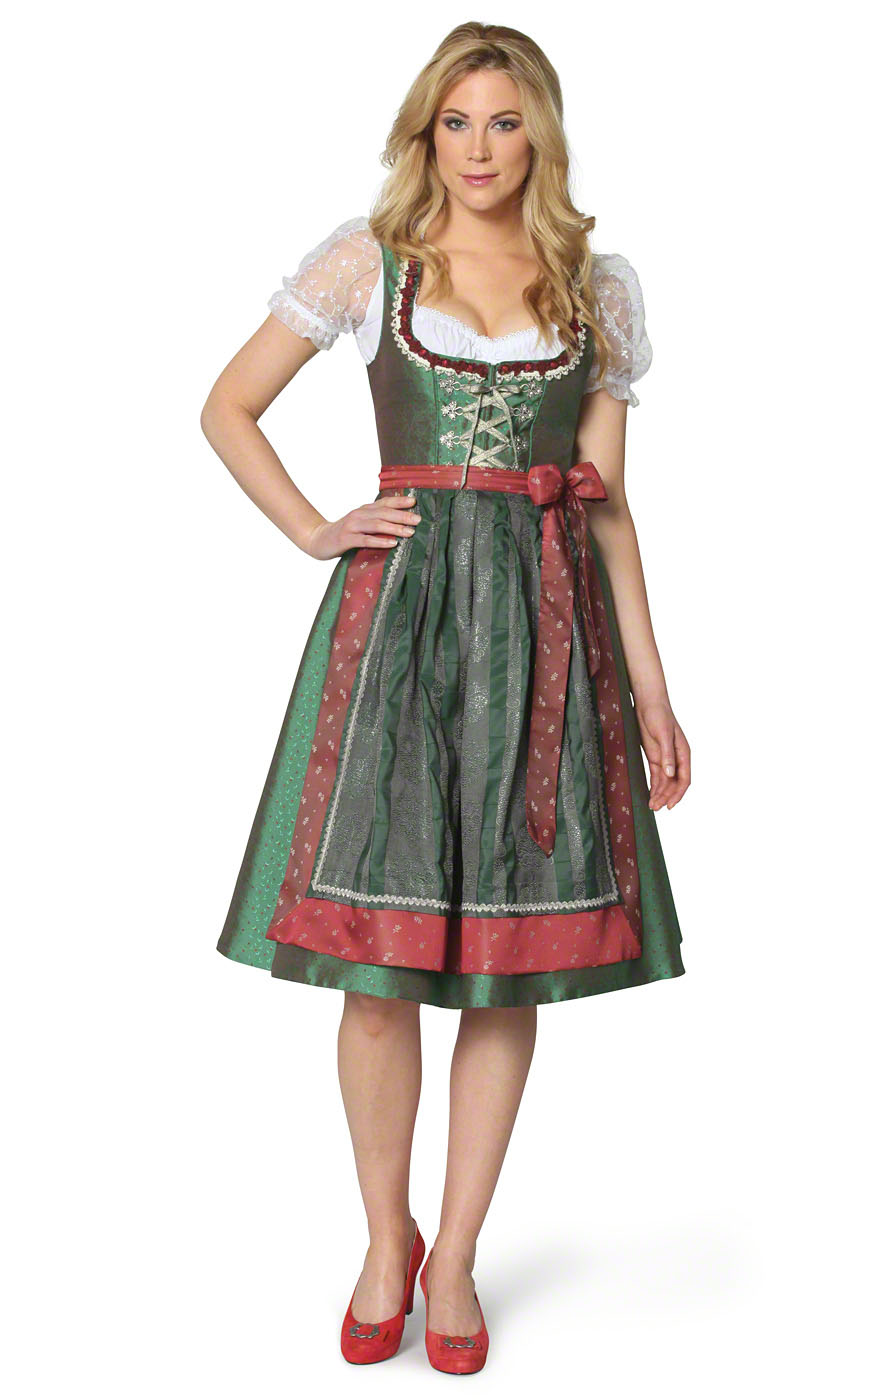 2015 Oktoberfest Trends: things just got real | Trends ...